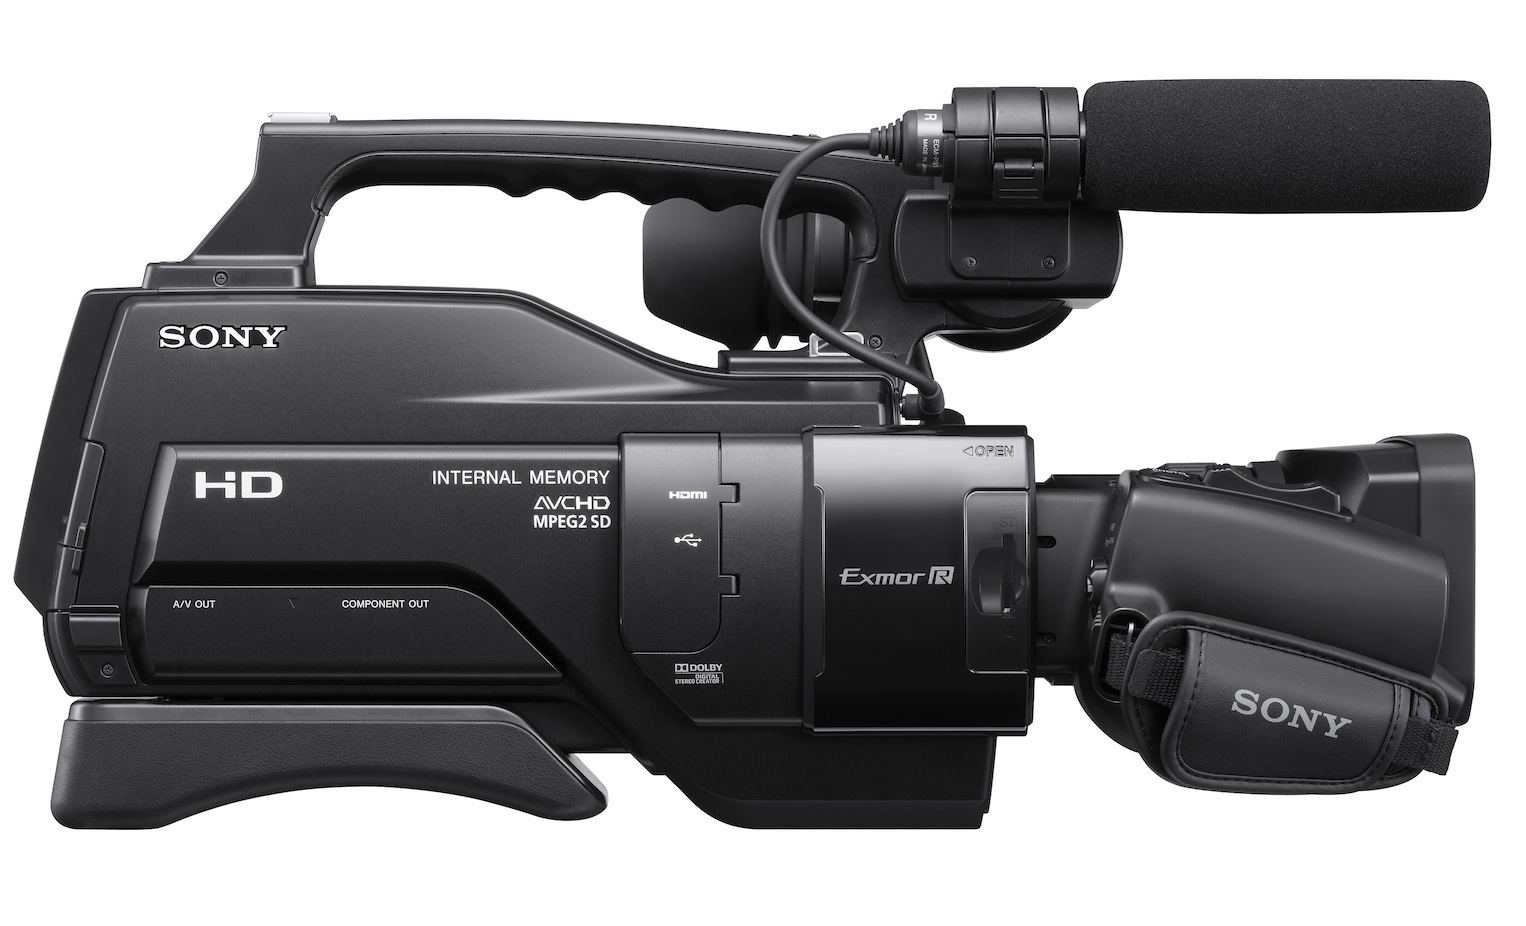 urbanfox tv blog shoulder mounted avchd cameras. Black Bedroom Furniture Sets. Home Design Ideas